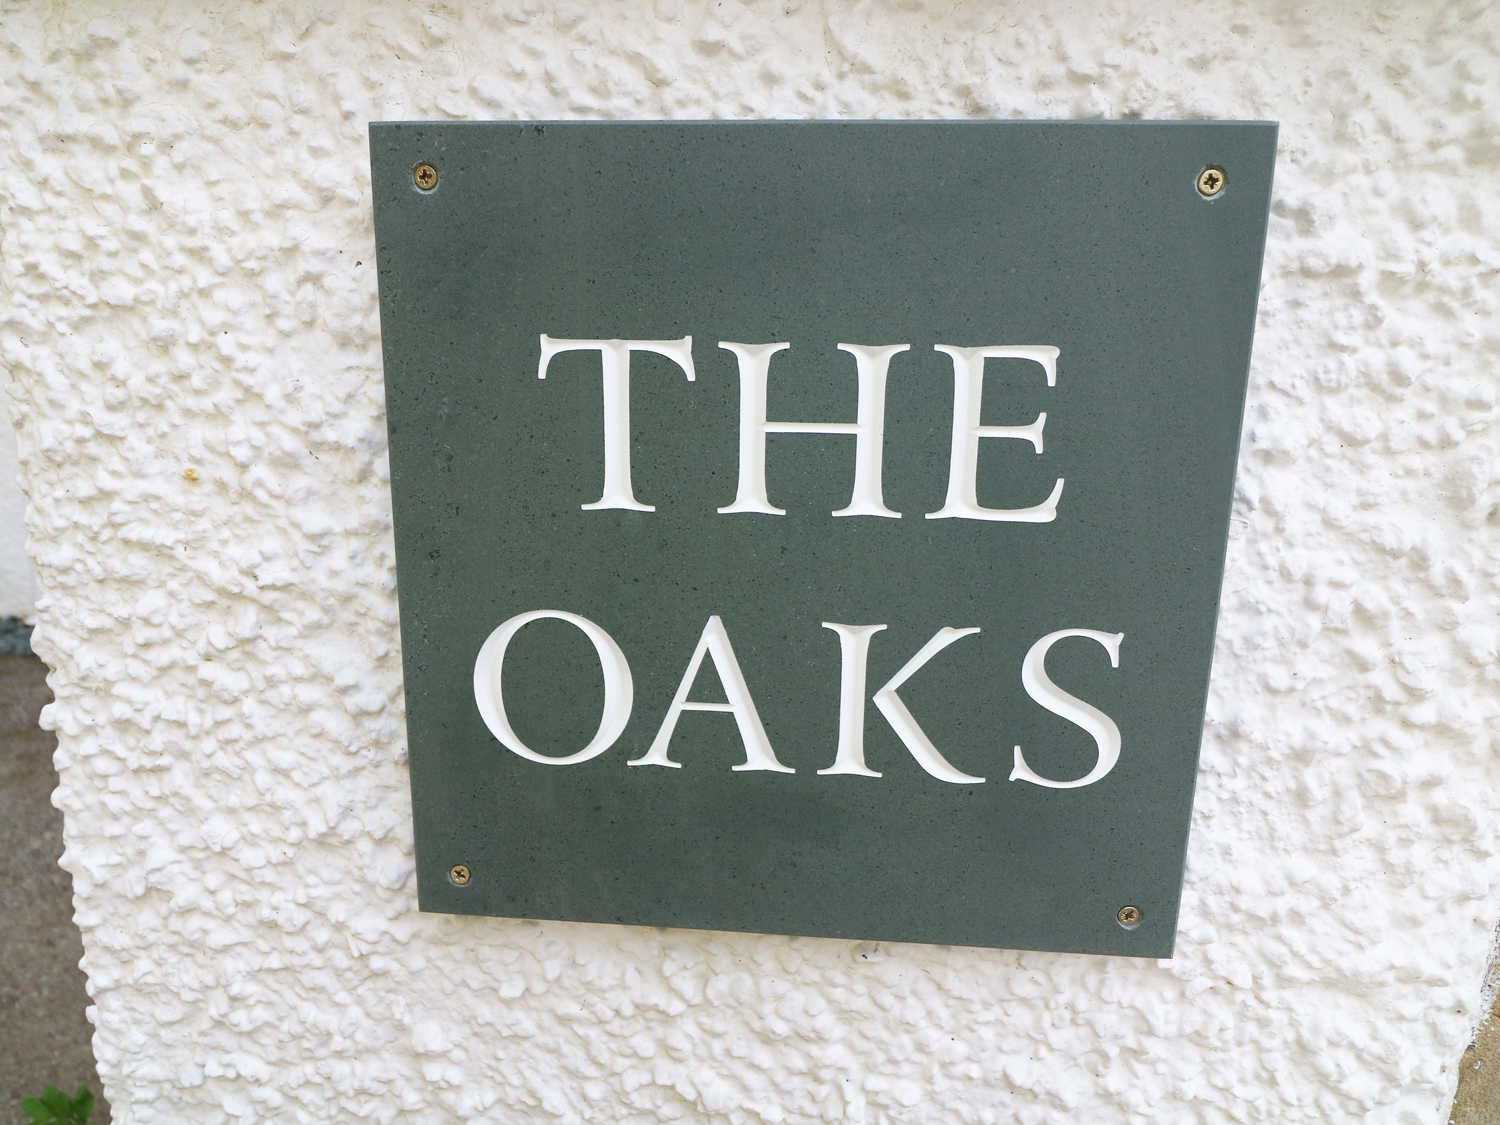 The Oaks Image 58